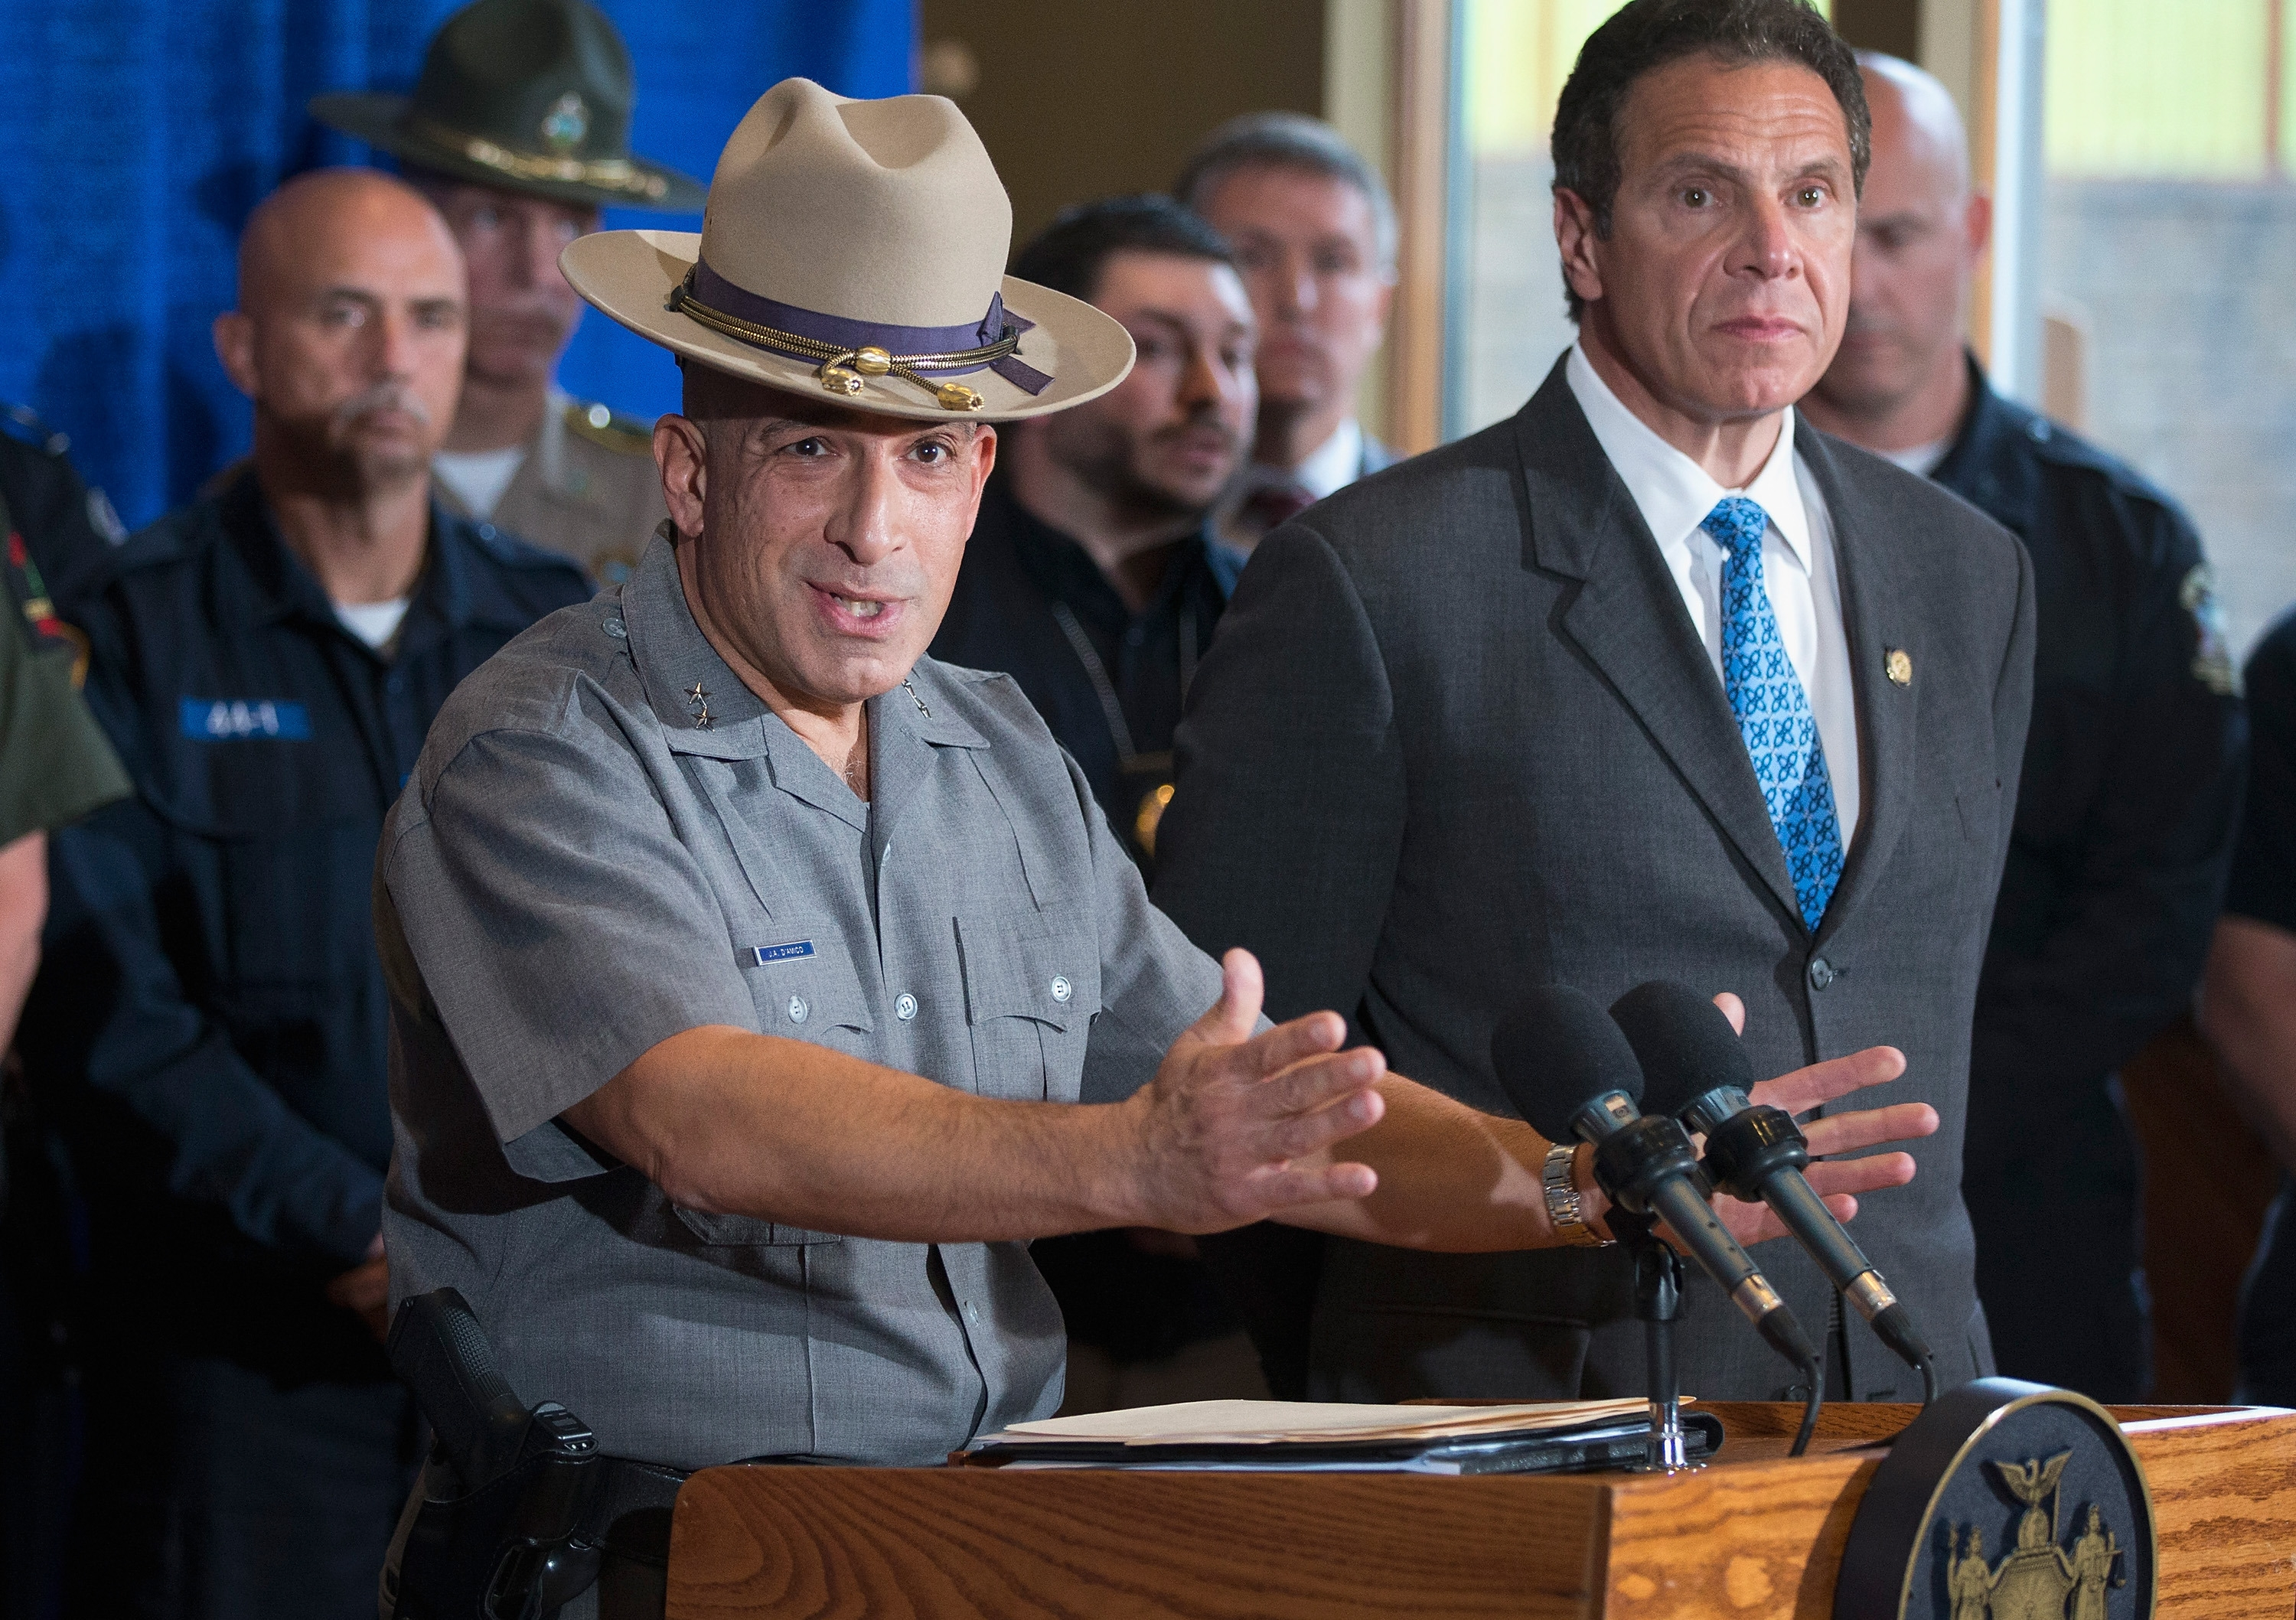 Flanked by New York Gov. Andrew Cuomo, New York State Police Supt. Joseph DAmico speaks to the media about the capture of convicted murderer David Sweat on June 28, 2015 in Malone. (Getty Images)